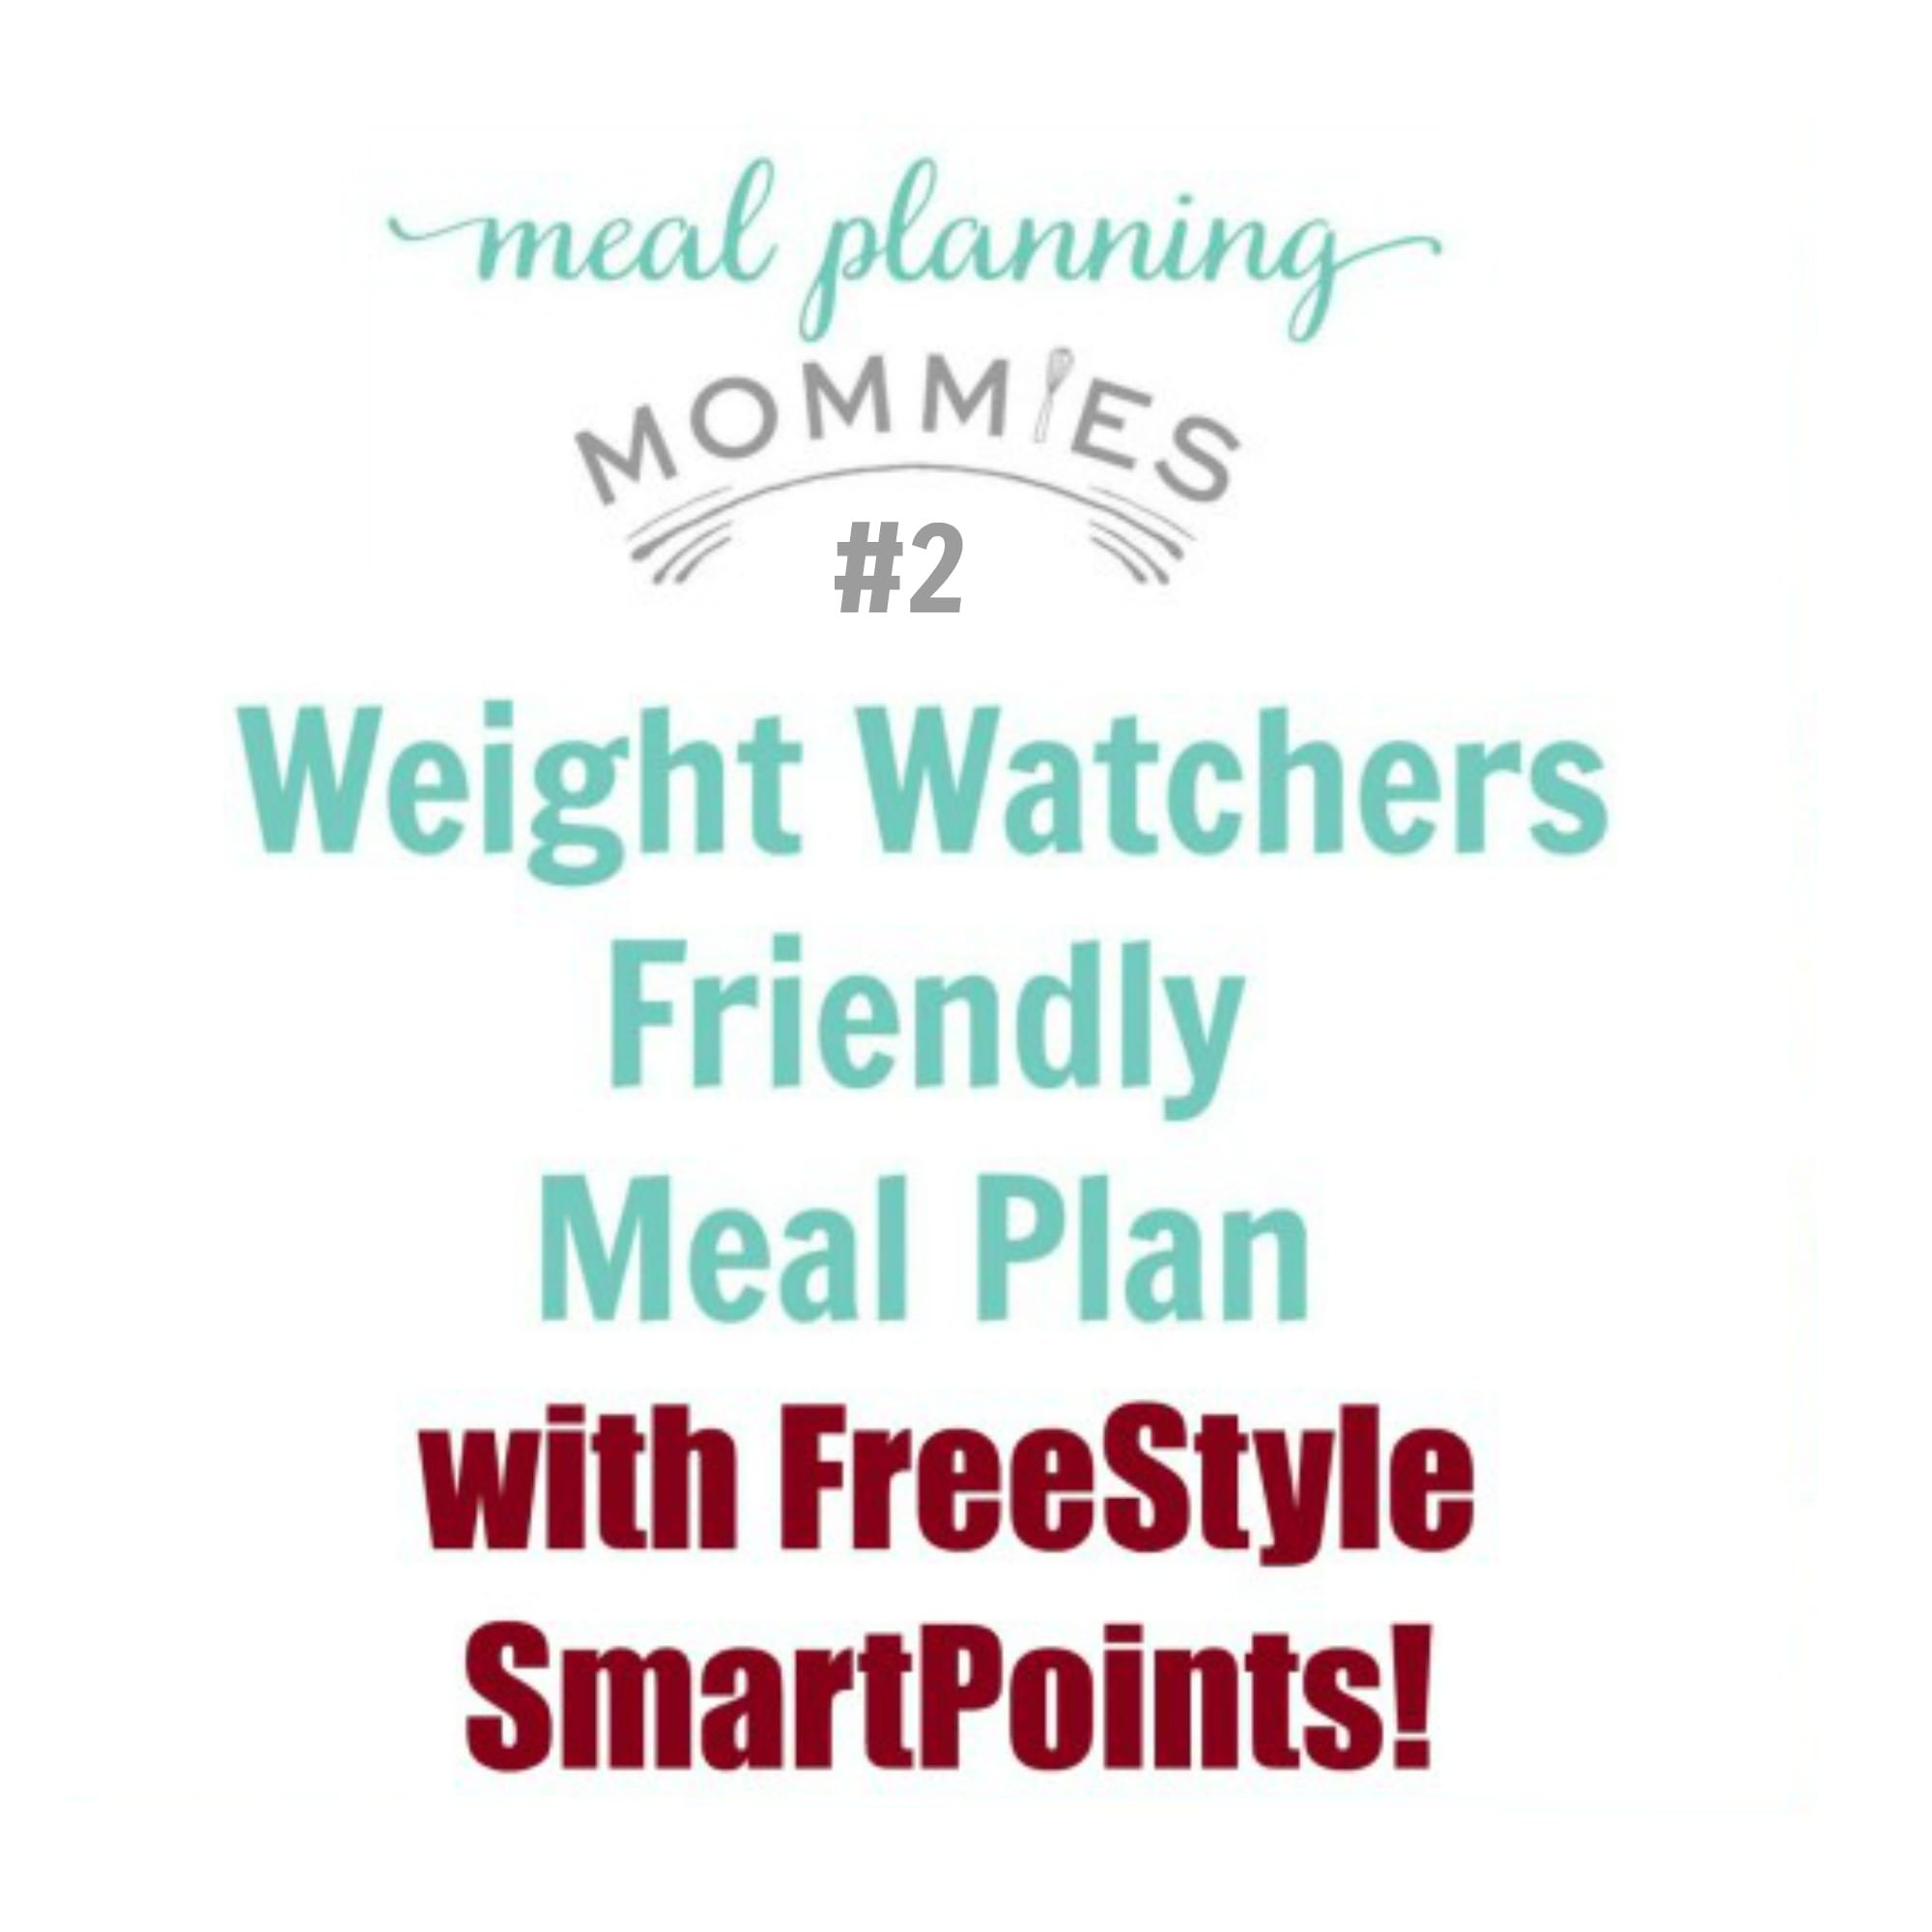 Weight watcher friendly meal plan 2 with freestyle smart points quick update this meal plan has been updated with the ww freestyle smart points per serving but the website these recipes are on has not updated the nvjuhfo Images